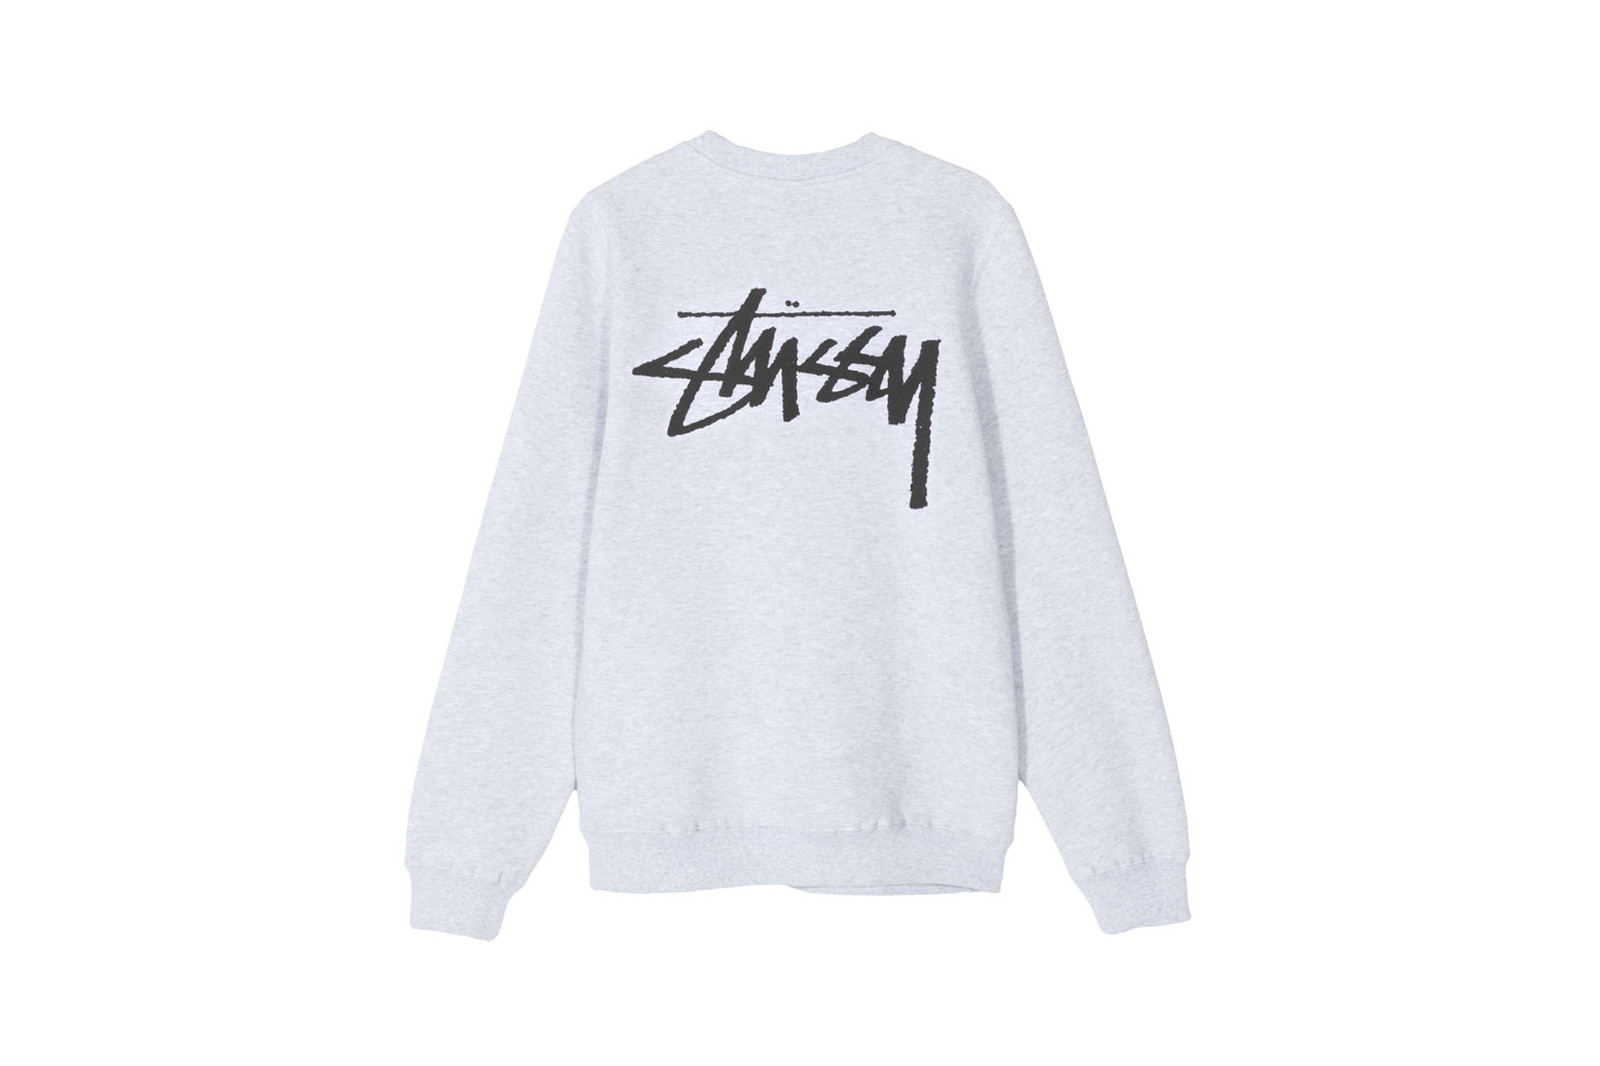 Stussy New Wave Gear Women